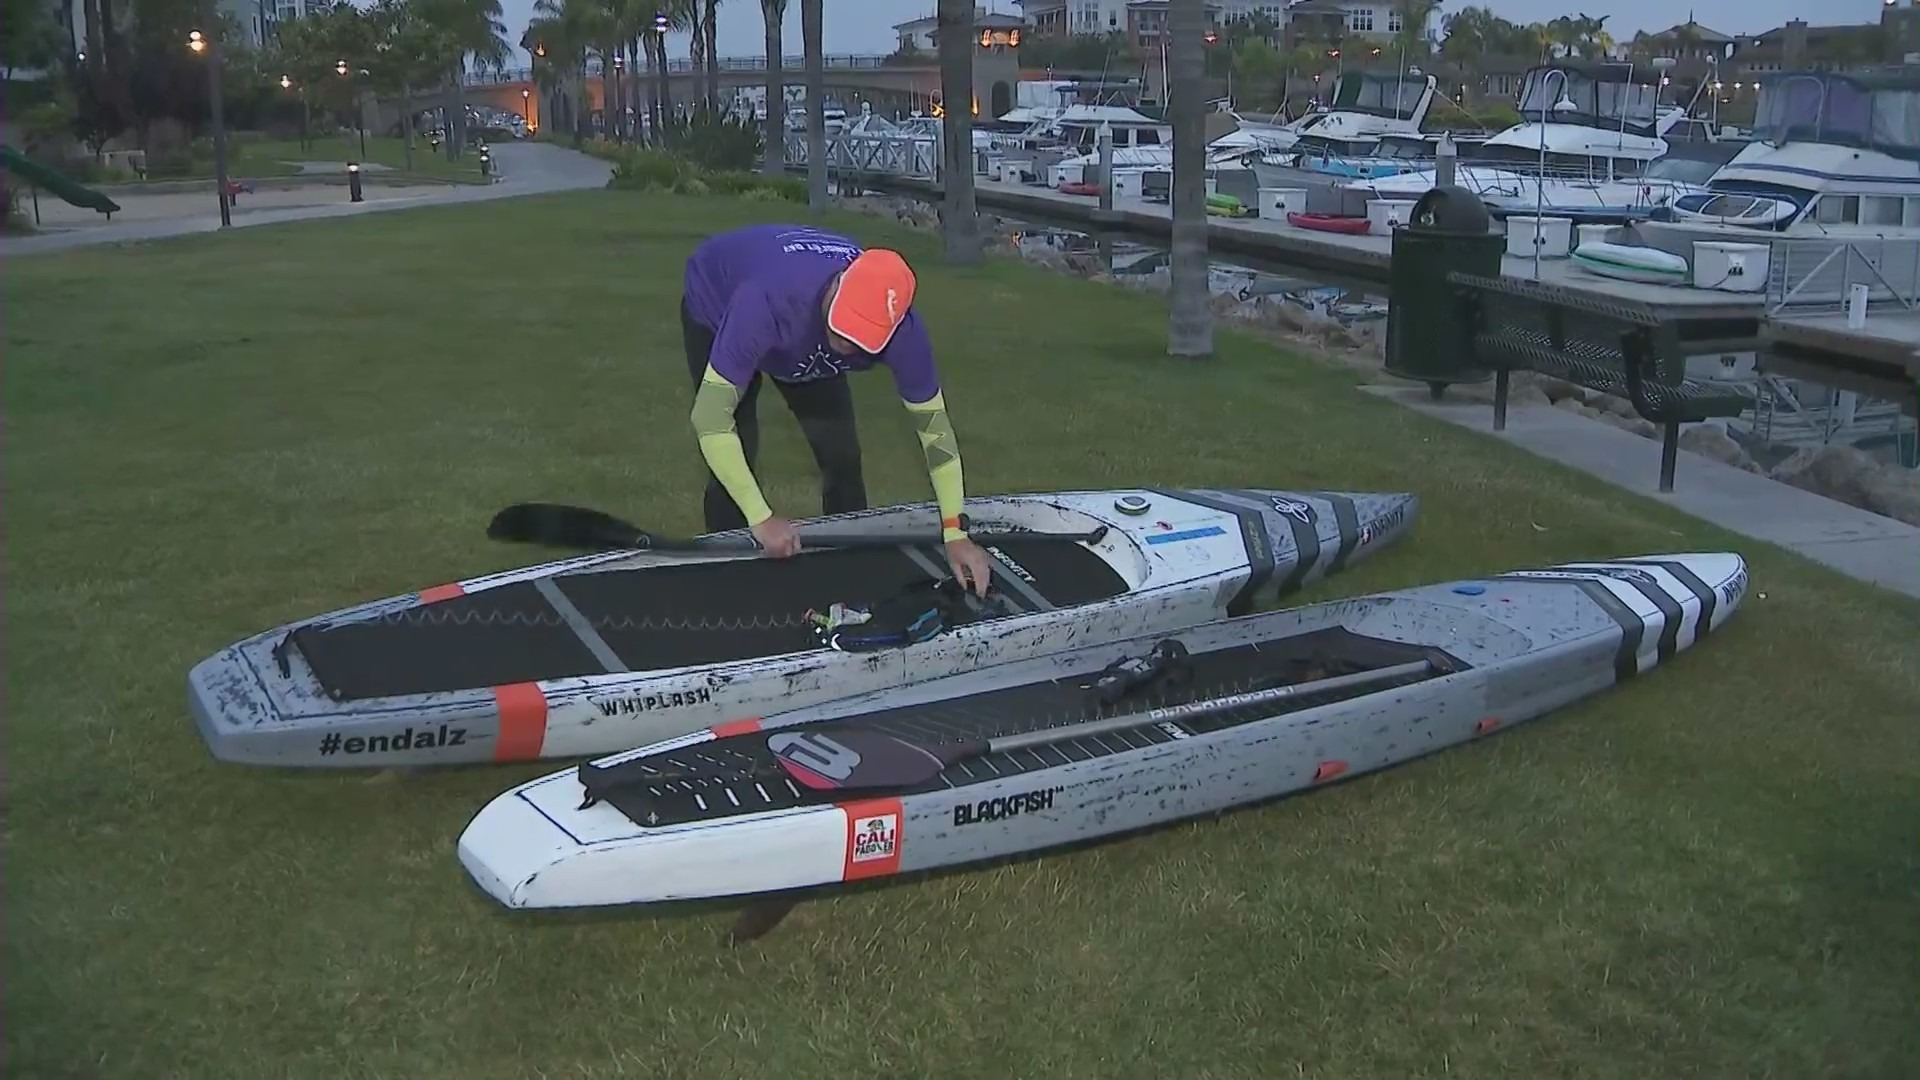 Juerg Geser got up before sunrise to start his 15-hour paddleboard journey as part of the Alzheimer's Association's Longest Day Campaign in honor of his father who is battling Alzheimer's Disease back home in Switzerland on June 20, 2021.